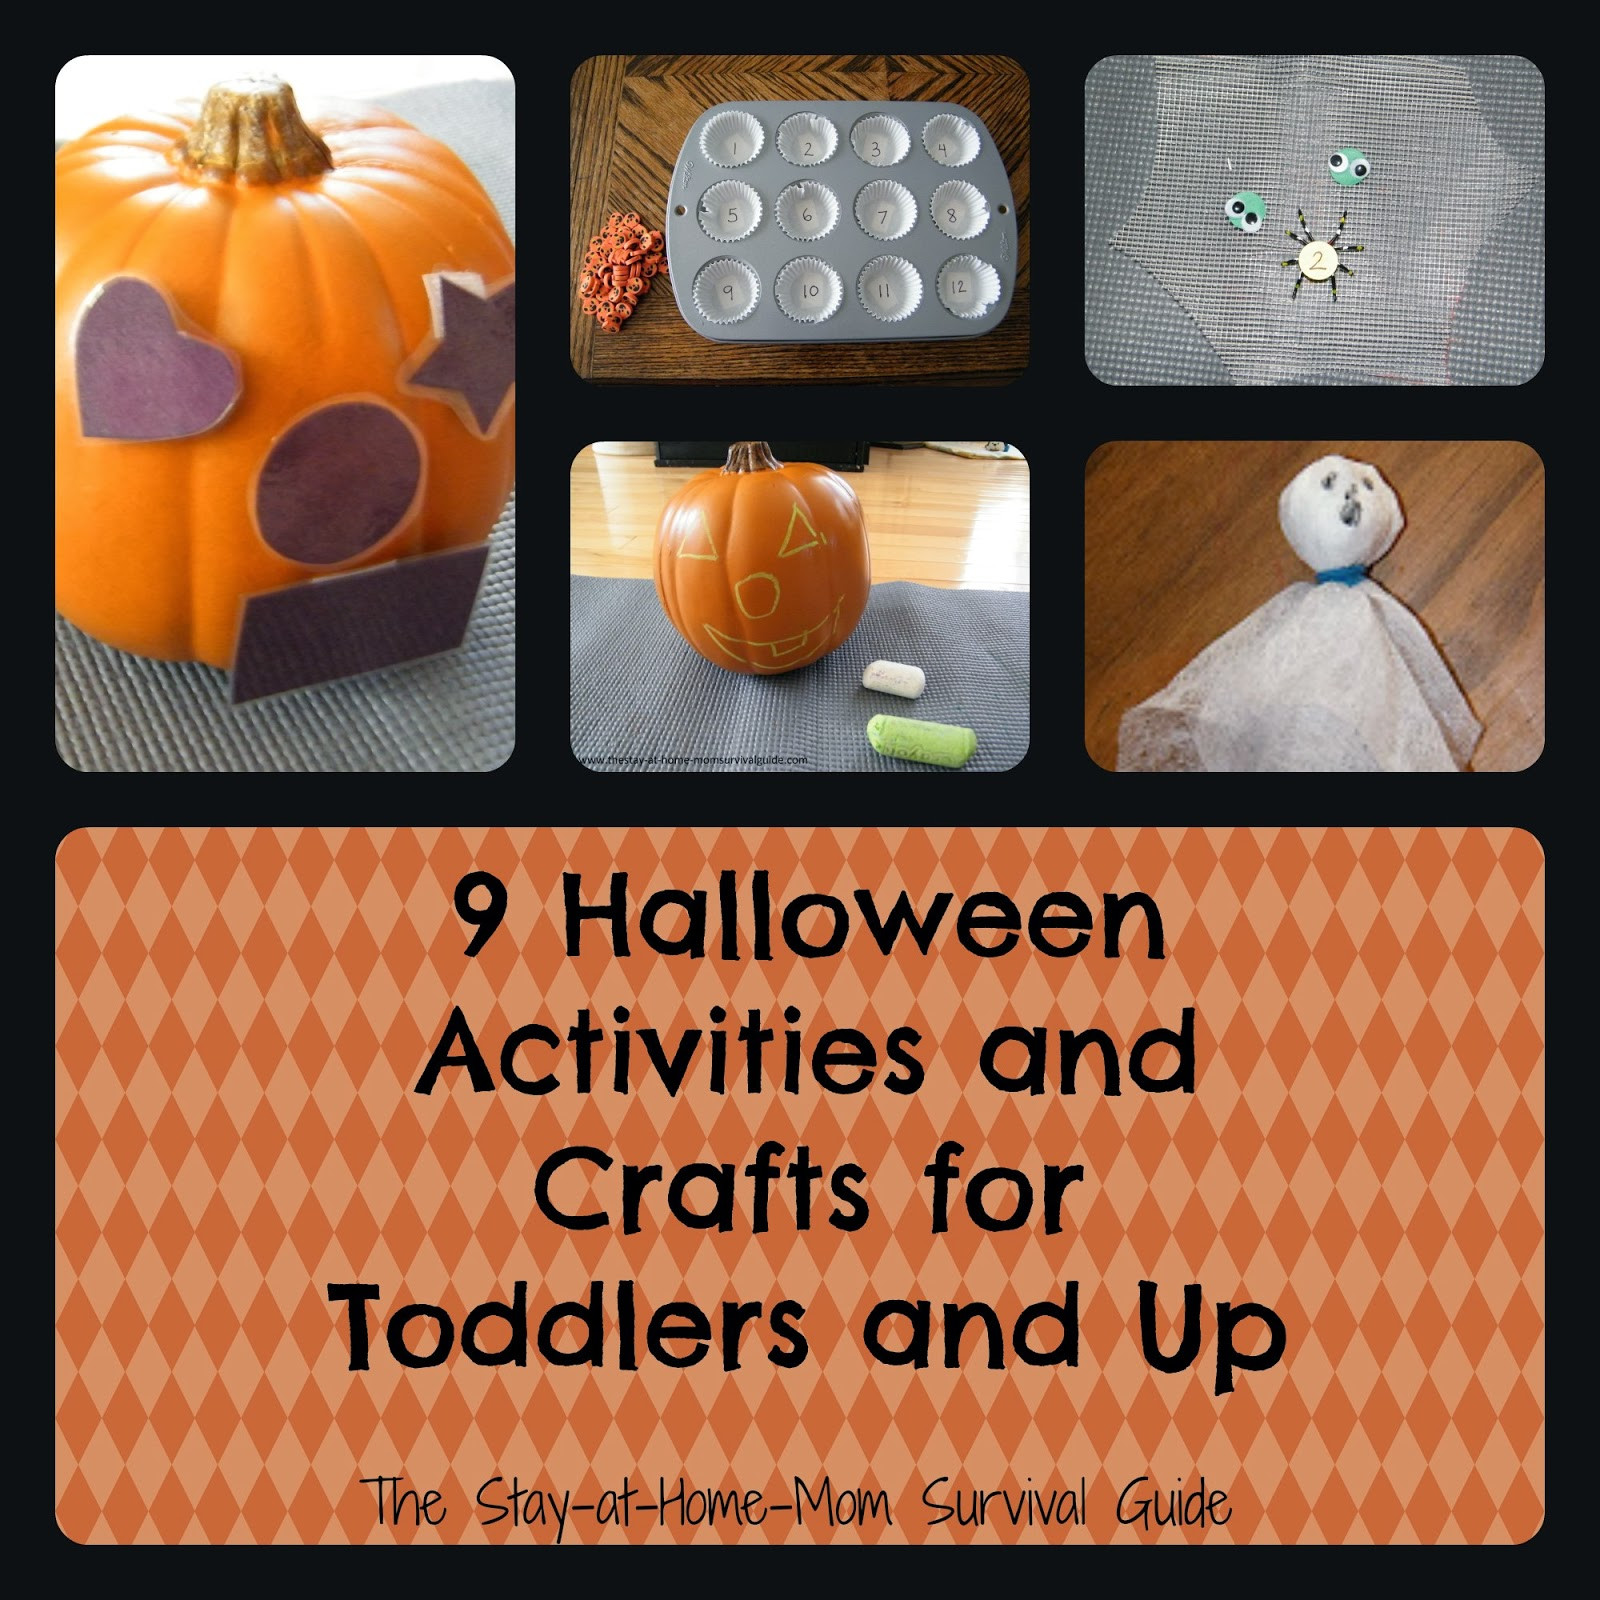 Best ideas about Home Crafts For Toddlers . Save or Pin 9 Halloween Activities and Crafts for Toddlers and Up Now.